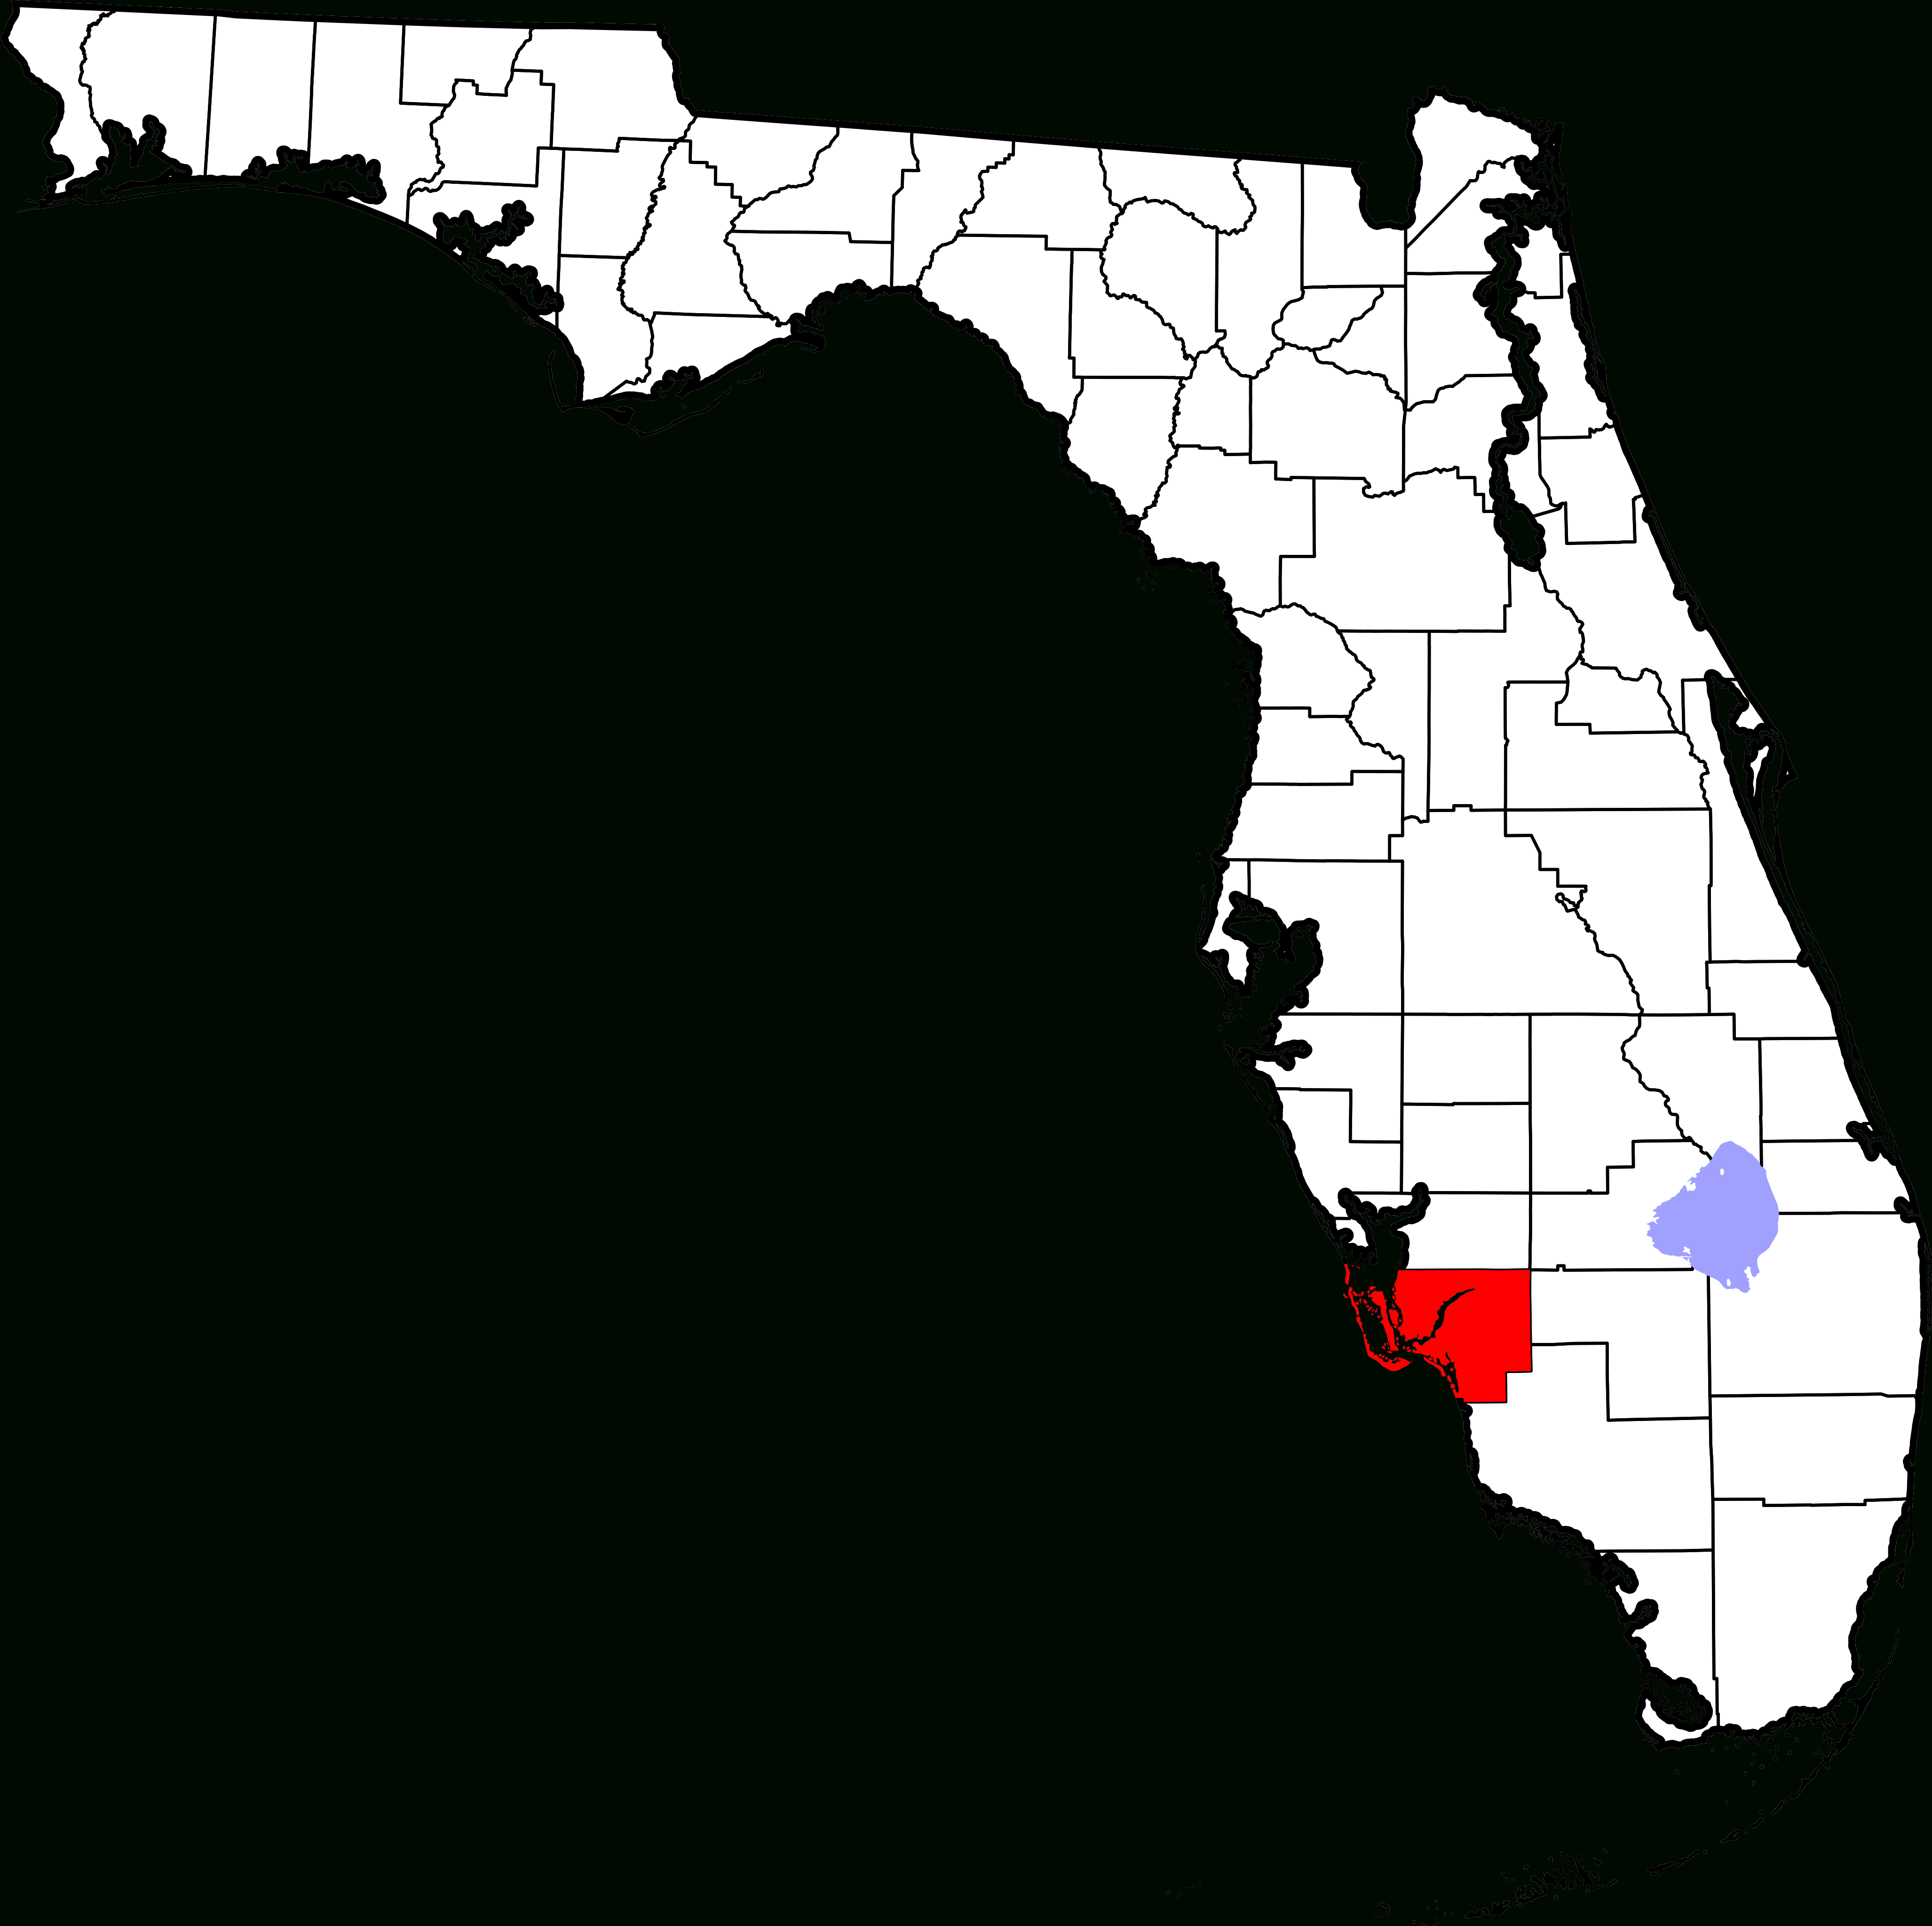 File:map Of Florida Highlighting Lee County.svg - Wikipedia - Map Of Lee County Florida